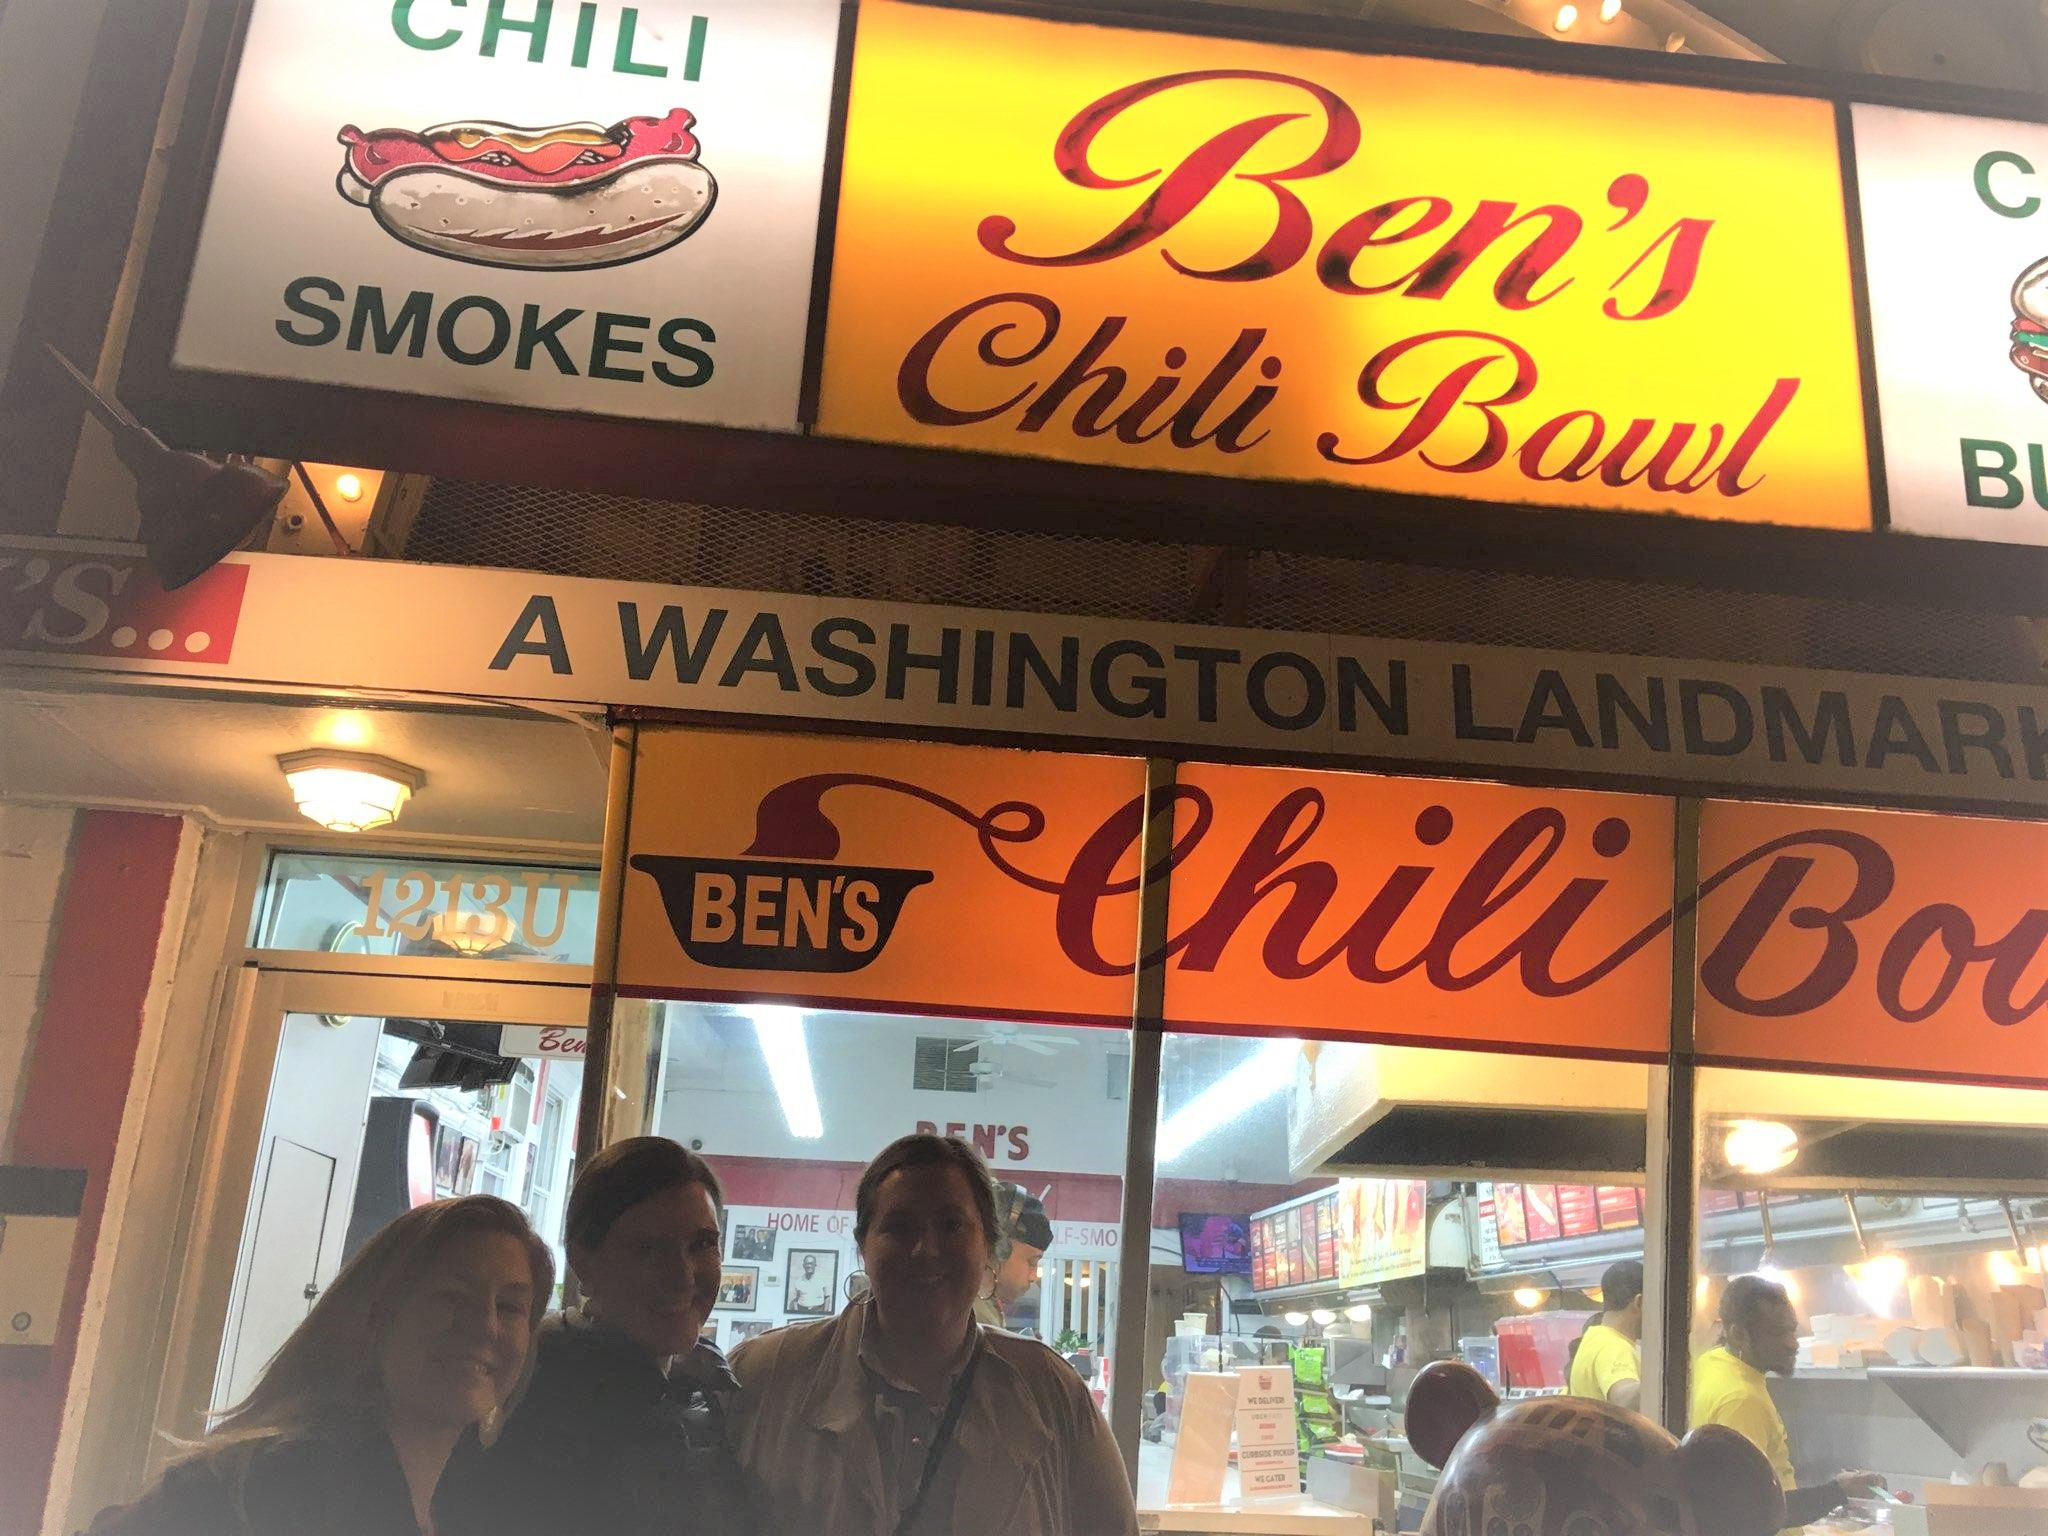 MOVING FORWARD: Dinner at Ben's Chili Bowl included an insightful presentation by Hari Jones on the role of African Americans in the Civil War (pictured left to right Melissa Cuff, Hollis Emery, and Carrie Danner).